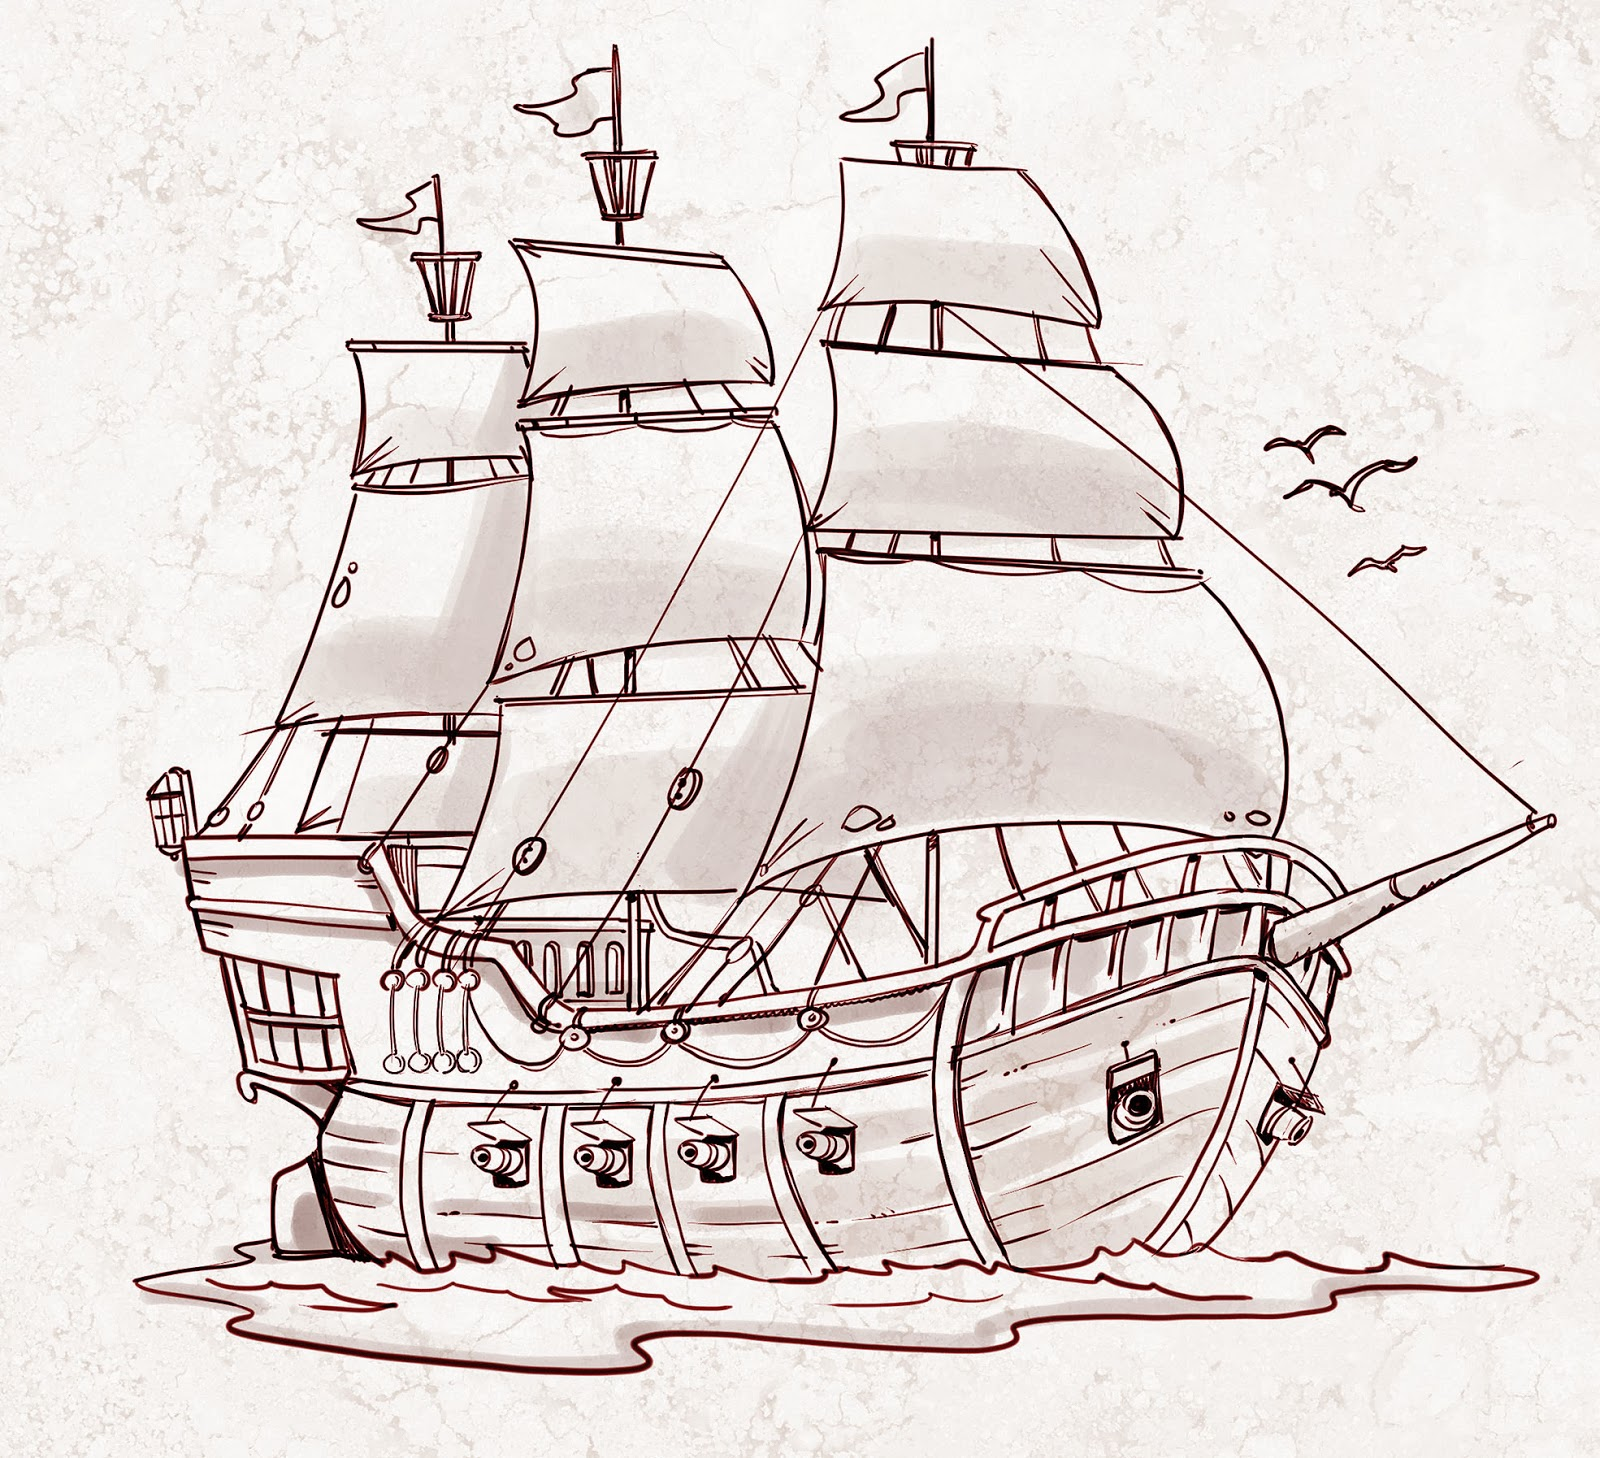 Drawn pirate spanish For book sketch How to